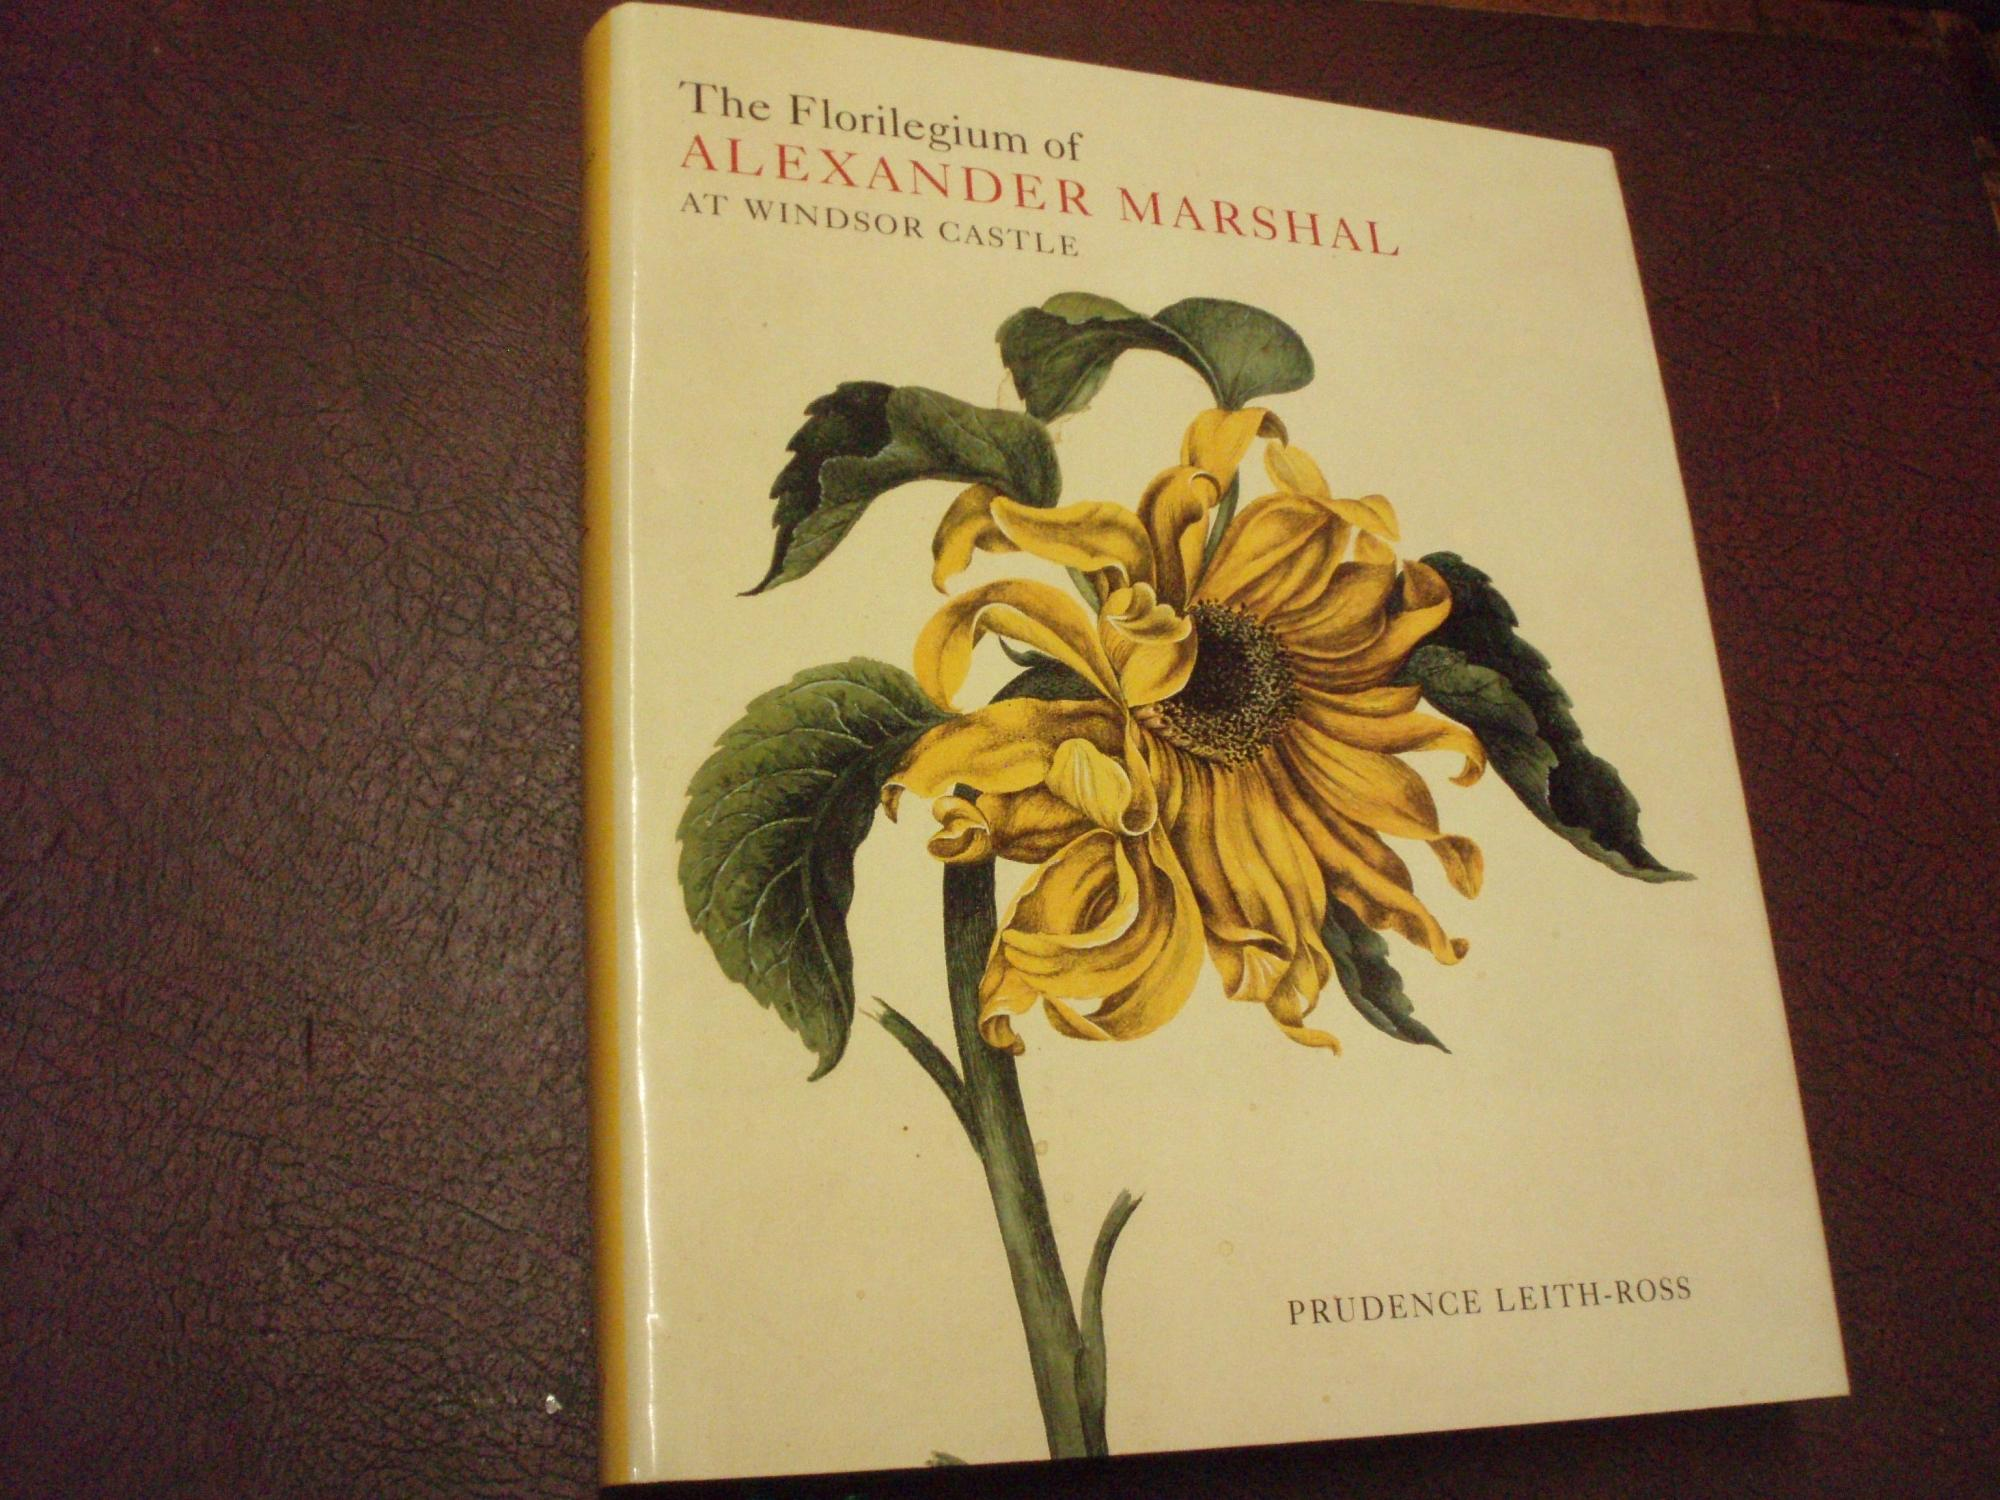 The Florilegium of Alexander Marshal in the Collection of Her Majesty The Queen at Windsor Castle (The Natural History Drawings at Windsor Castle Vol